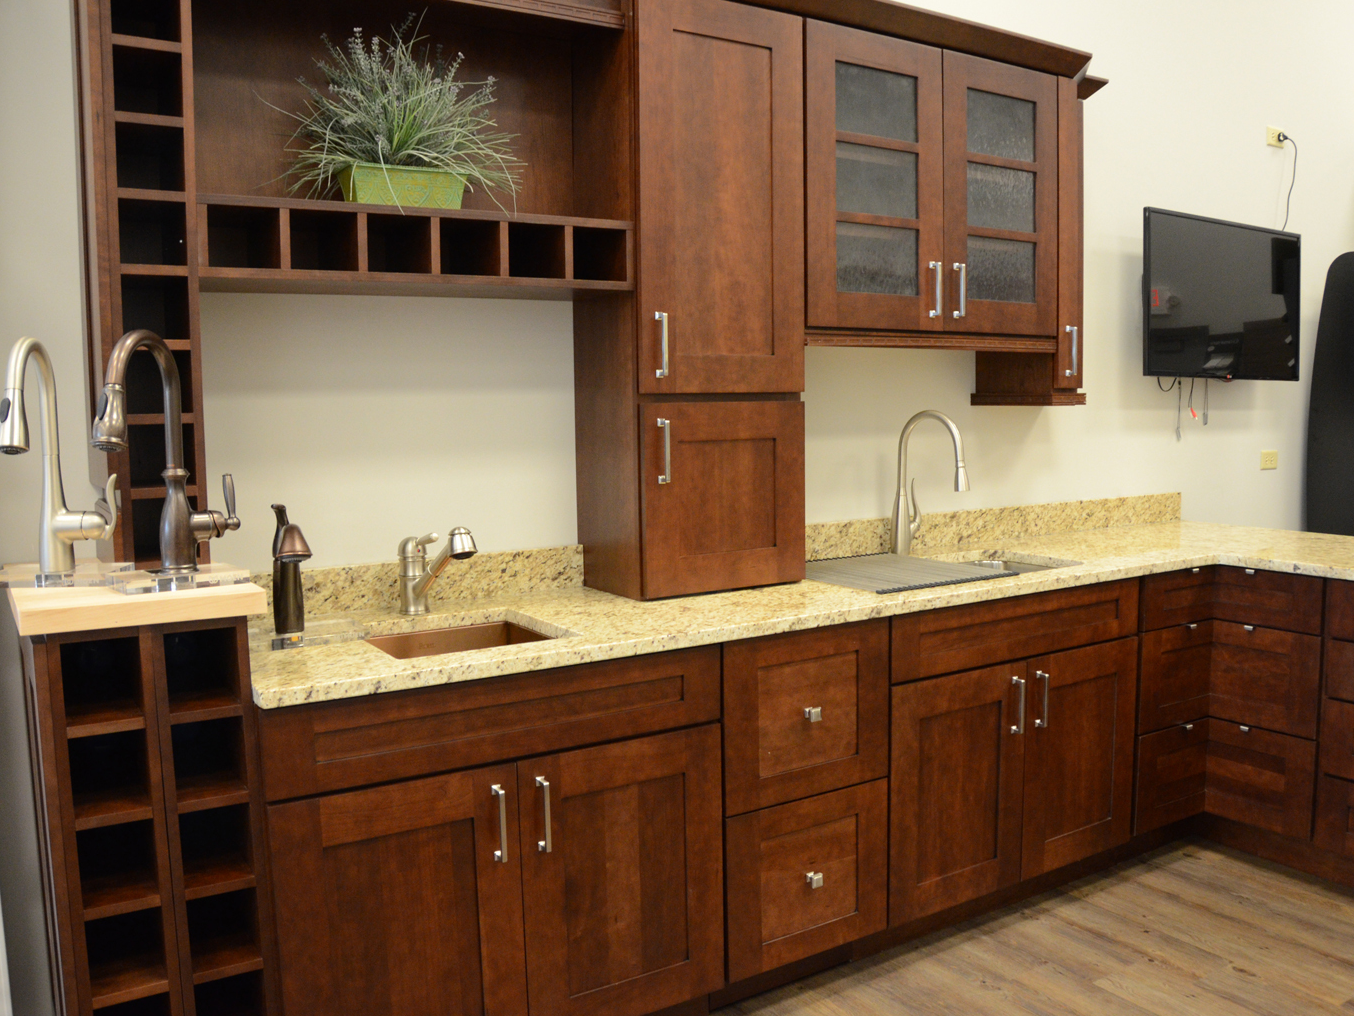 KOHLER Kitchen & Bathroom Products at Crawford Supply in Mokena, IL